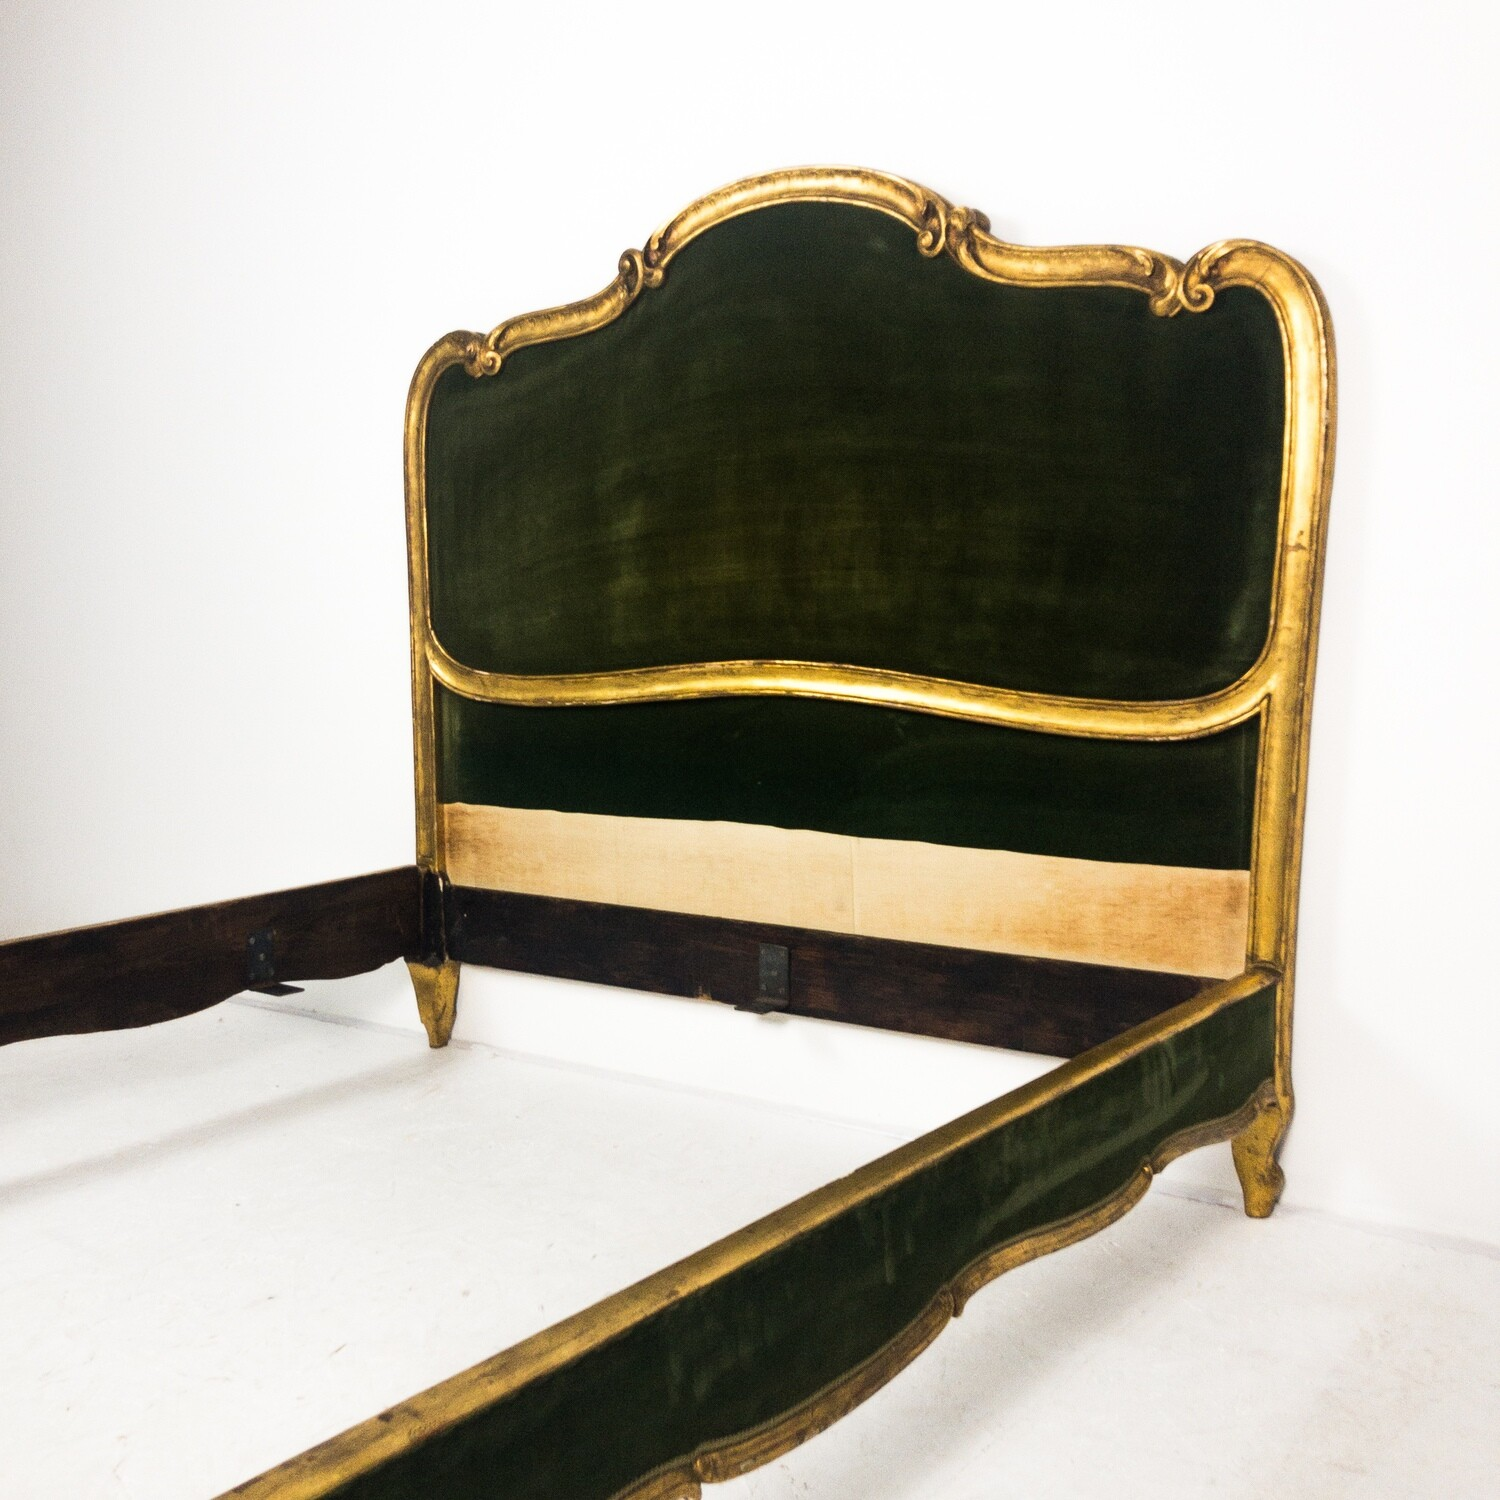 Louis XV style bed